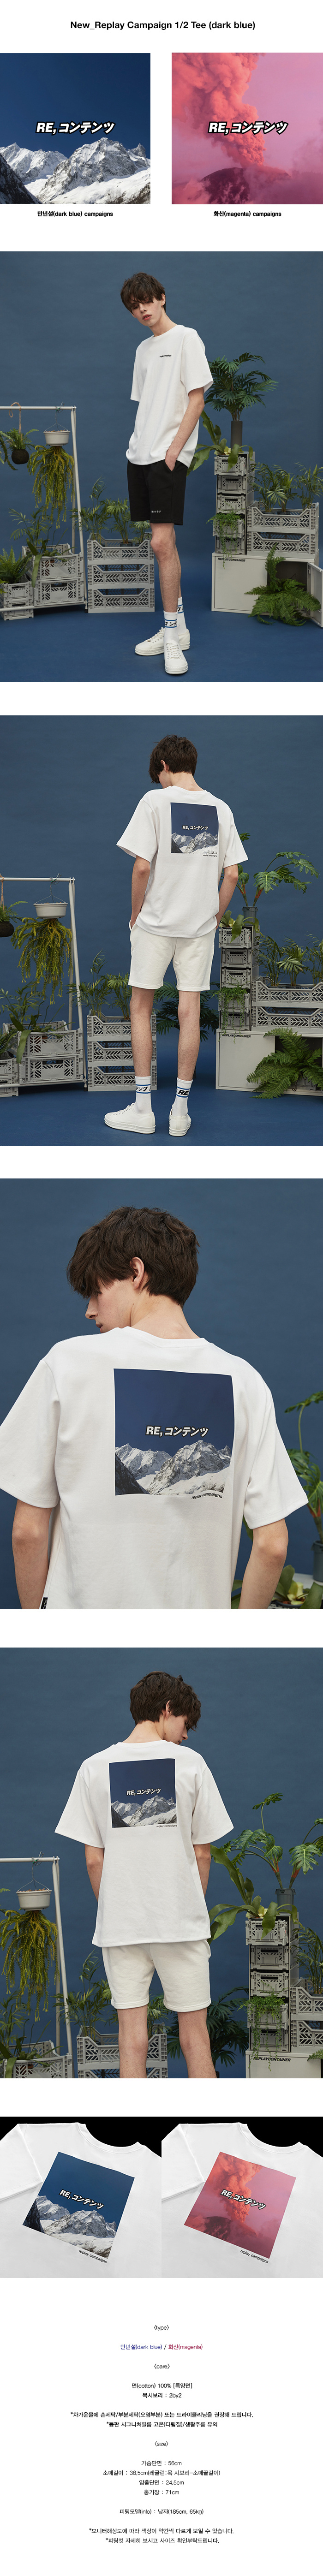 리플레이컨테이너(REPLAY CONTAINER) new replay campaign 1/2 tee (dark blue)